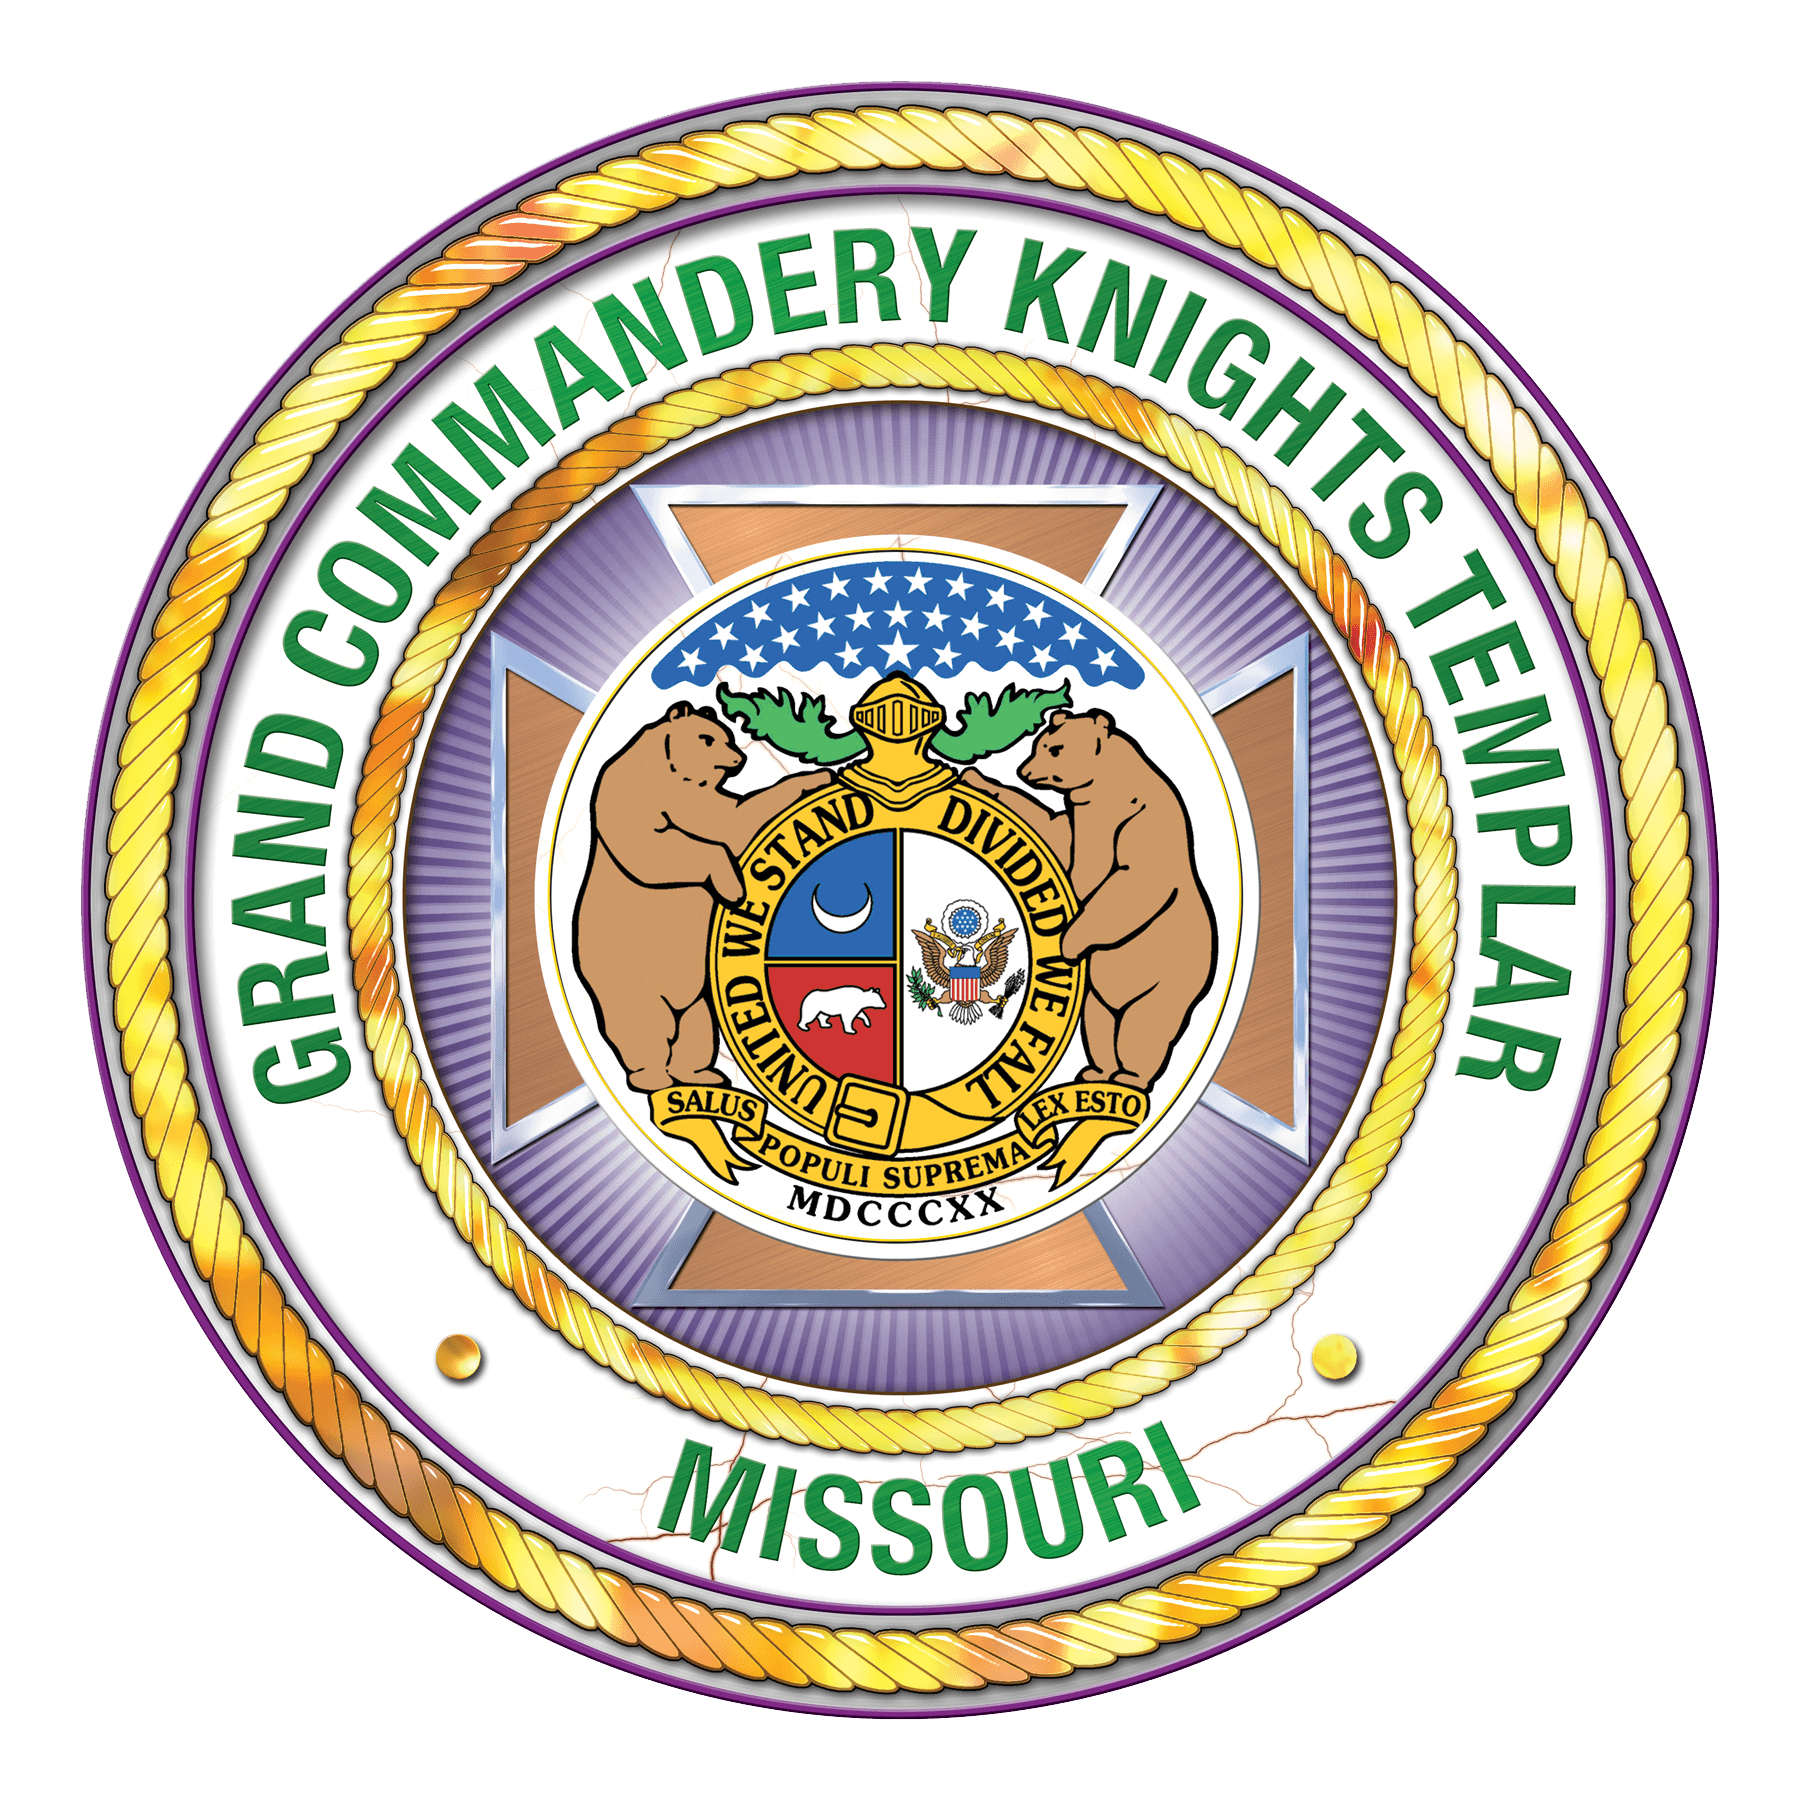 Grand Master's Templar Crusade - Independence @ Independence Masonic Temple | Independence | Missouri | United States